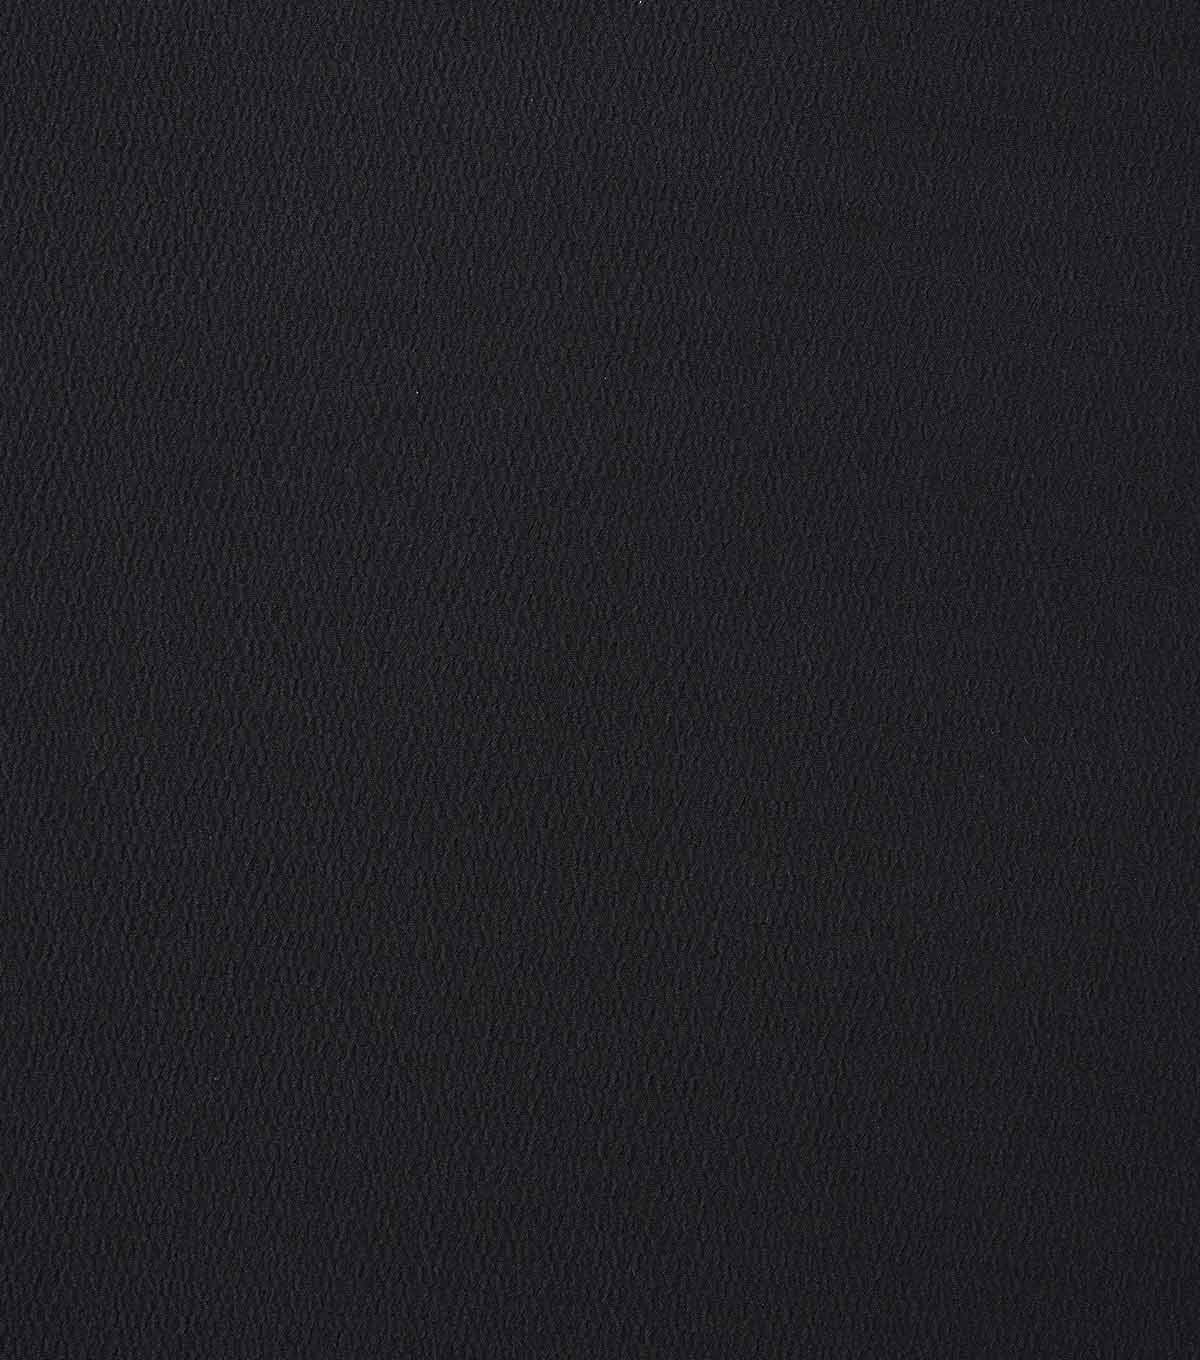 Silky Solids Textured Polyester Crepe Fabric-Solids, Black